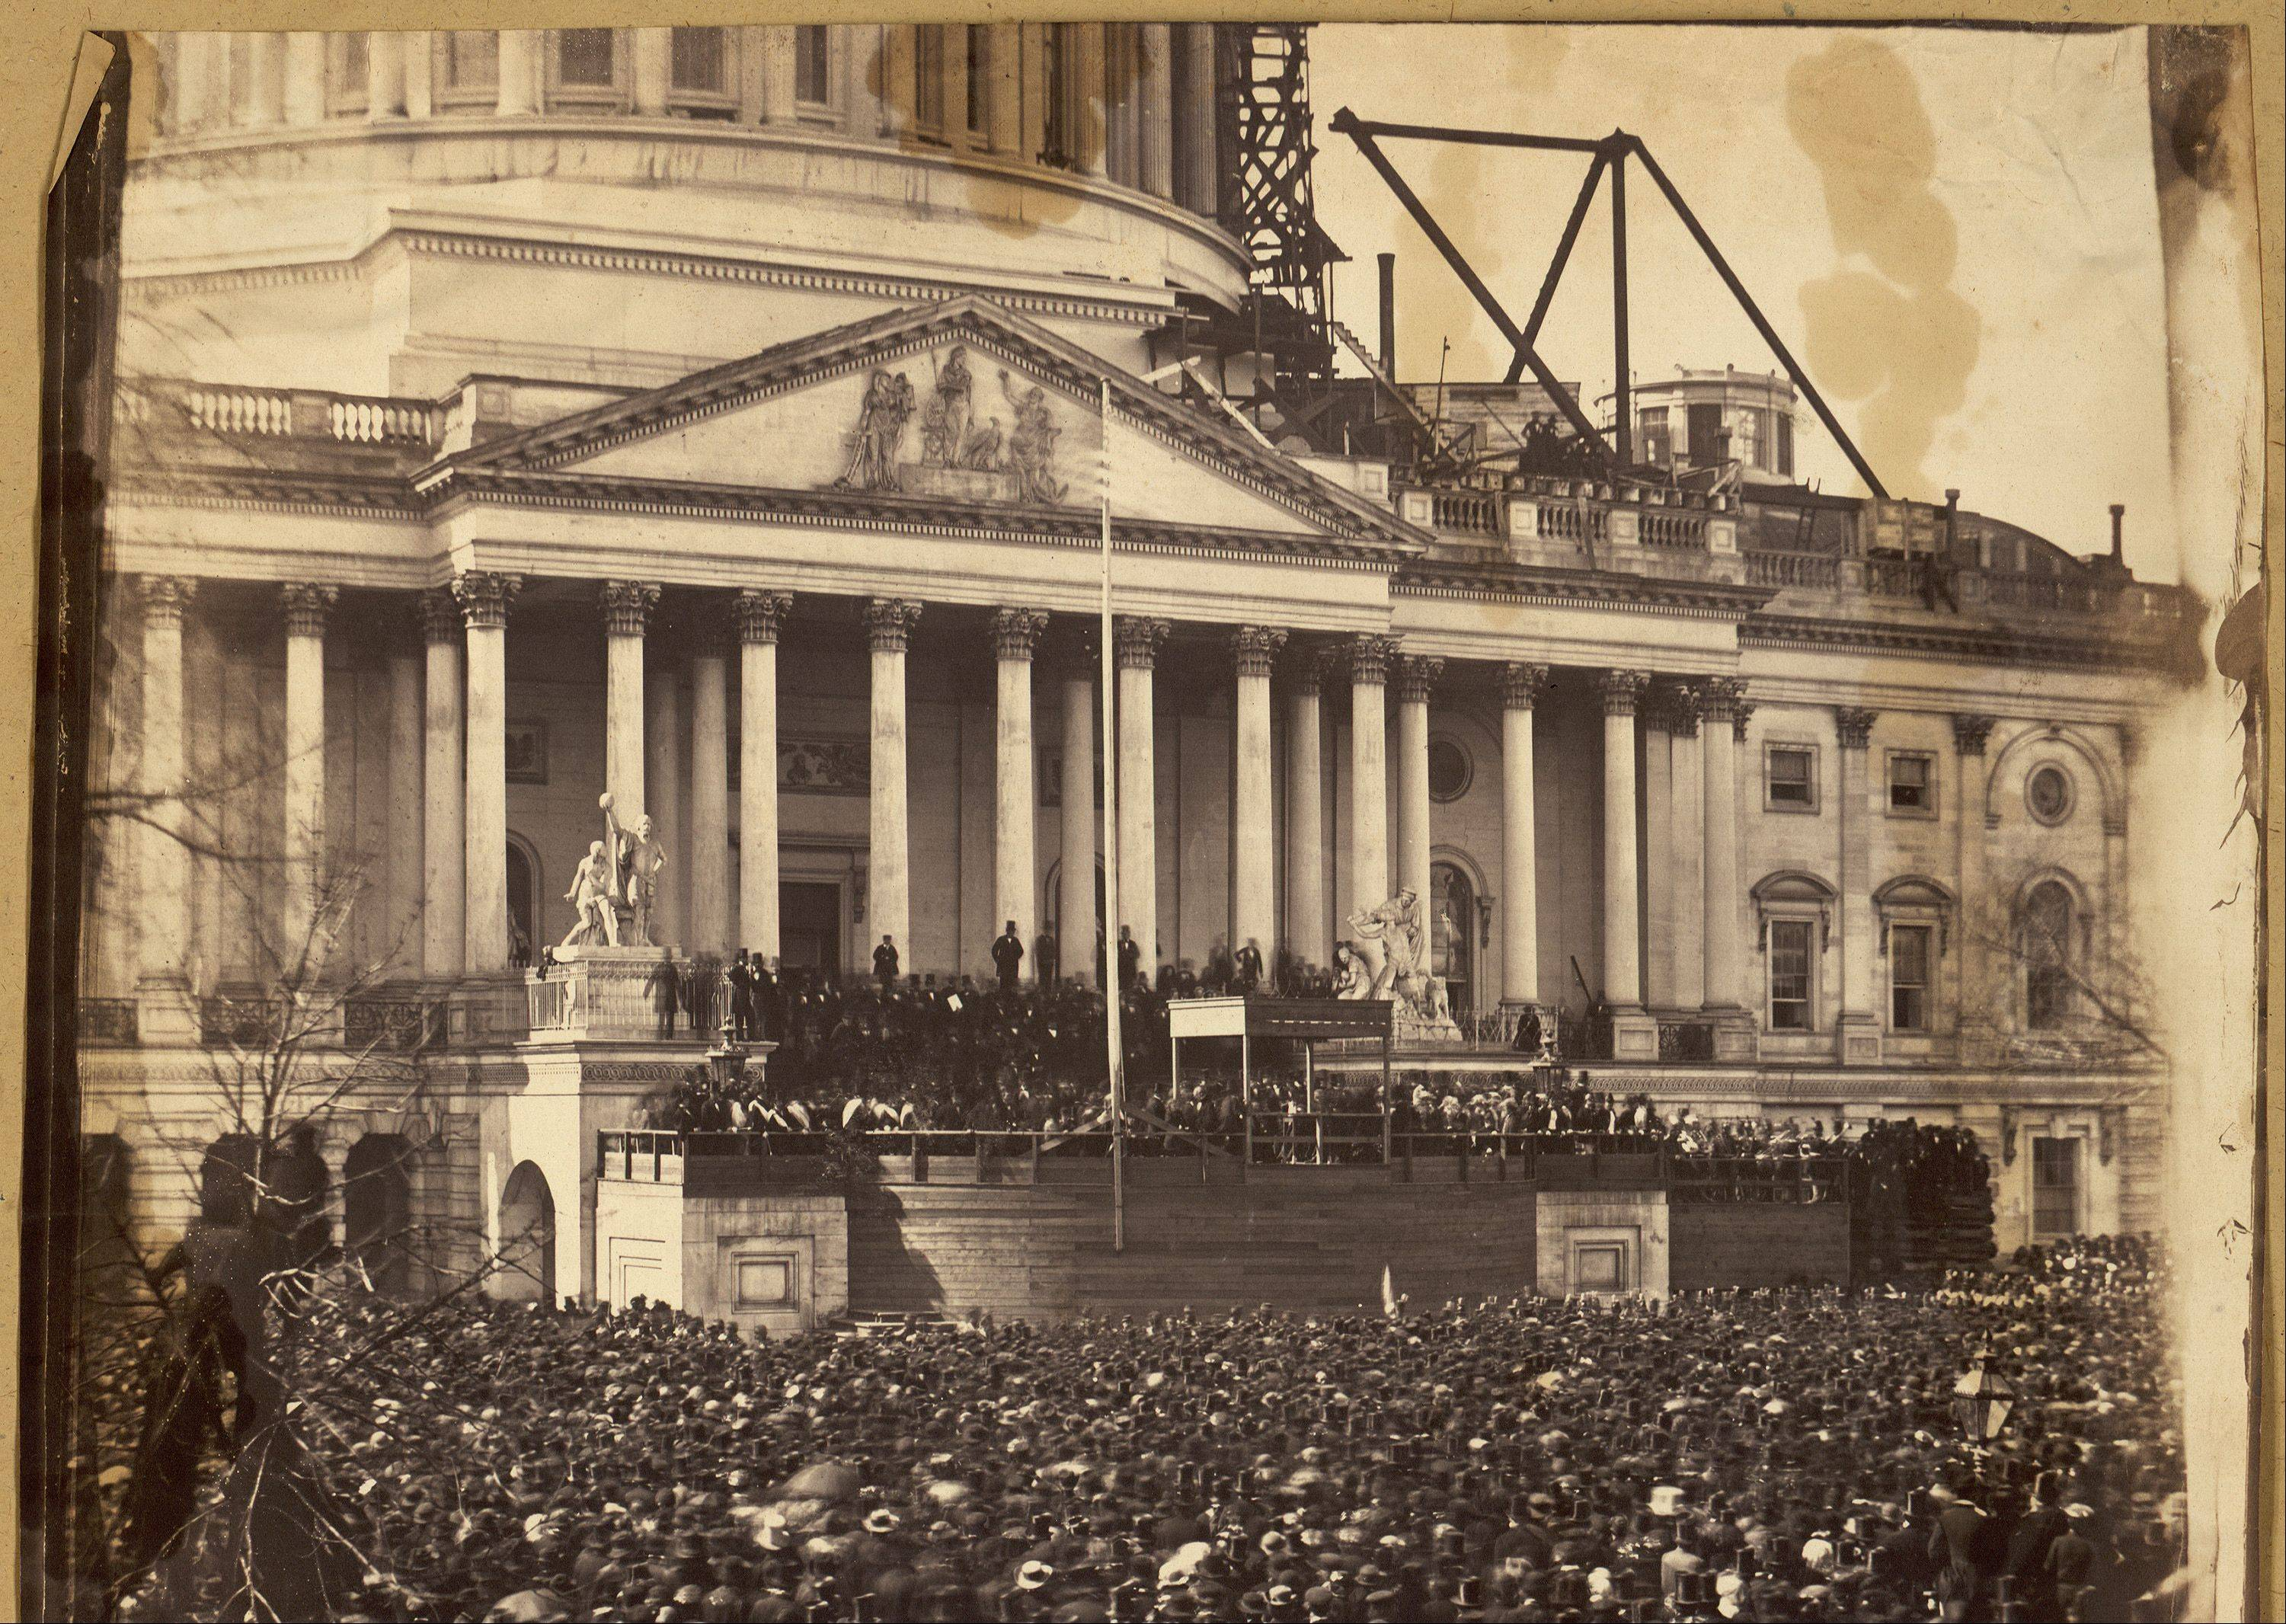 In this photo provided by the Library of Congress, participants crowd around at the first inauguration of President Abraham Lincoln at the U.S. Capitol in Washington, D.C., on March 4, 1861. Lincoln is standing under the wood canopy, at the front, midway between the left and center posts. His face is in shadow but the white shirt front is visible.